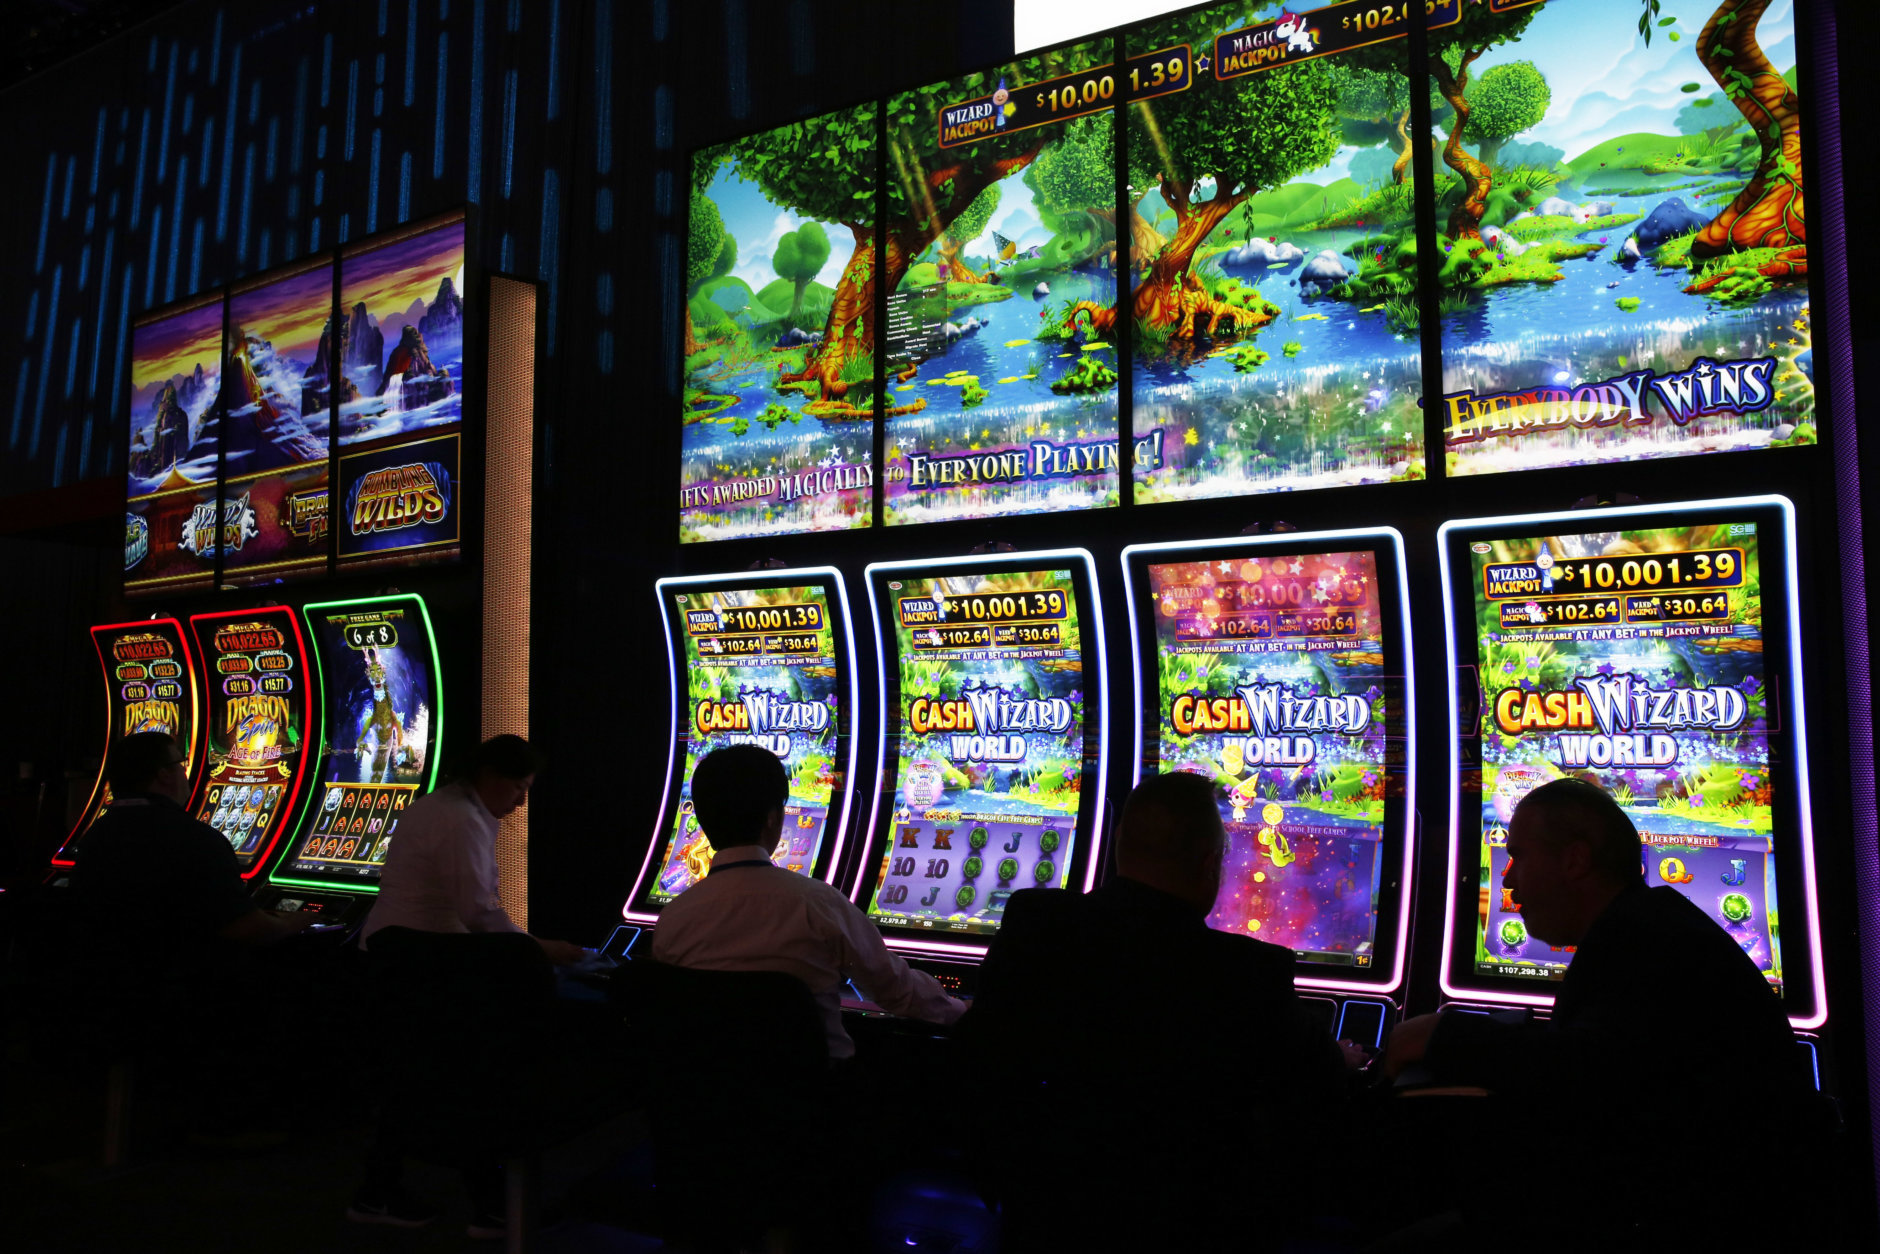 People sit at electronic slot machines at the Scientific Games booth during the Global Gaming Expo, Wednesday, Oct. 10, 2018, in Las Vegas. (AP Photo/John Locher)